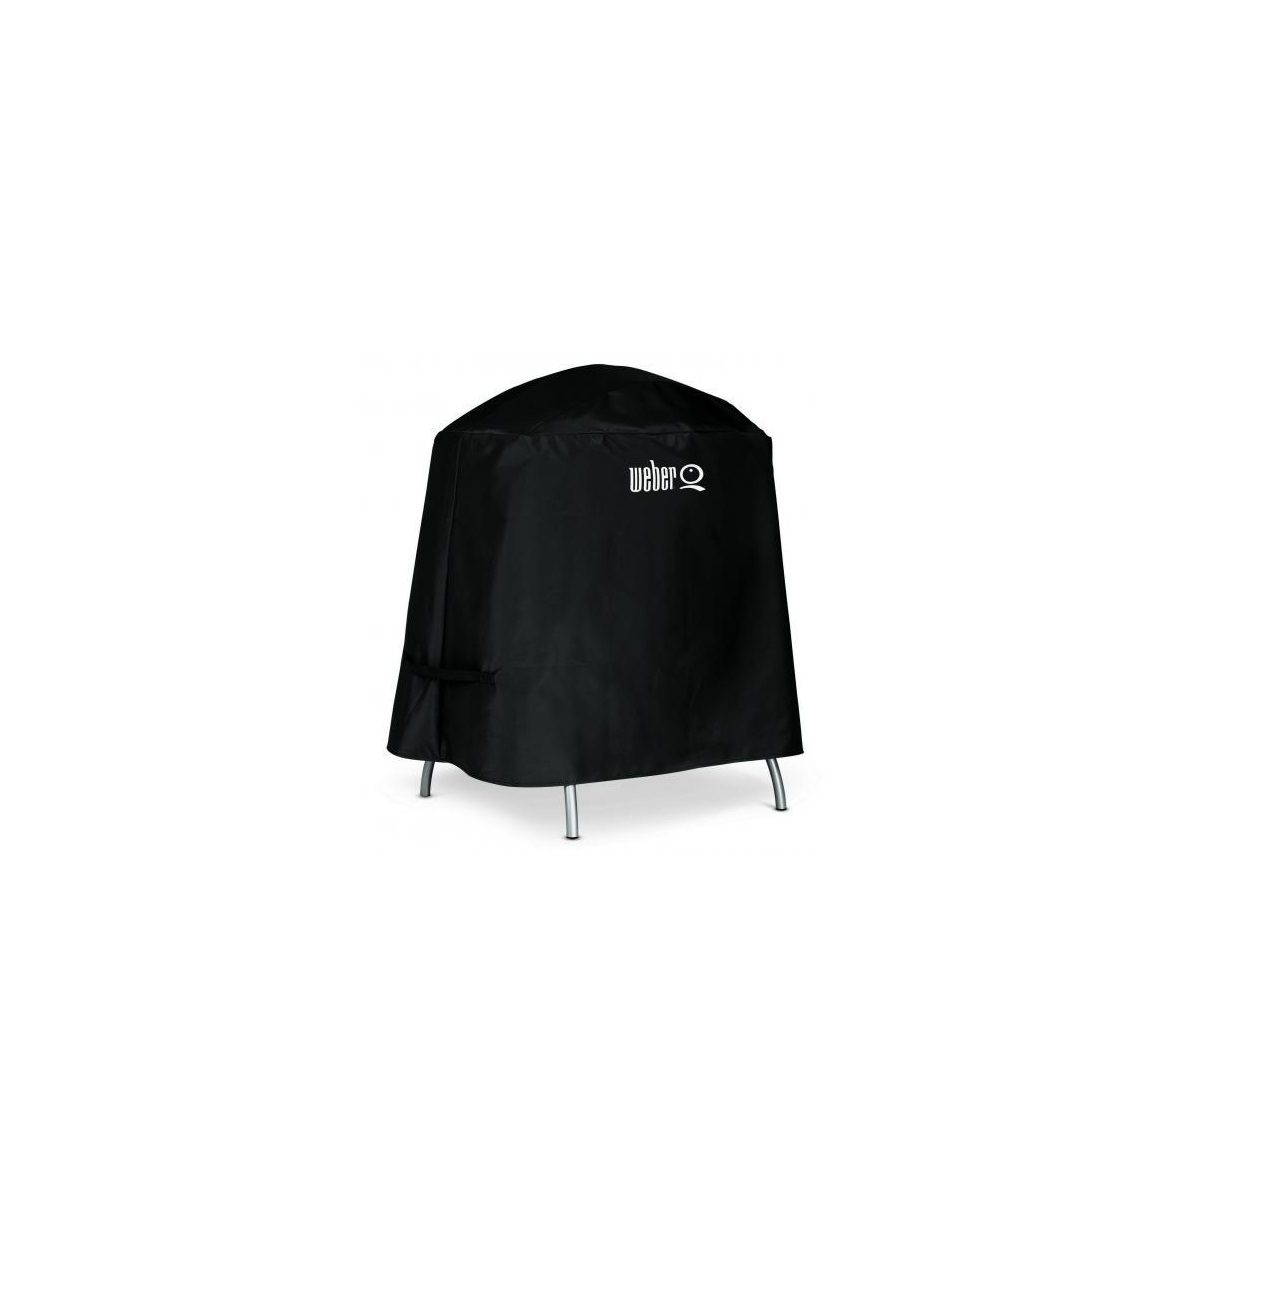 Weber Q Cover For Q120 220 With Stand 6554